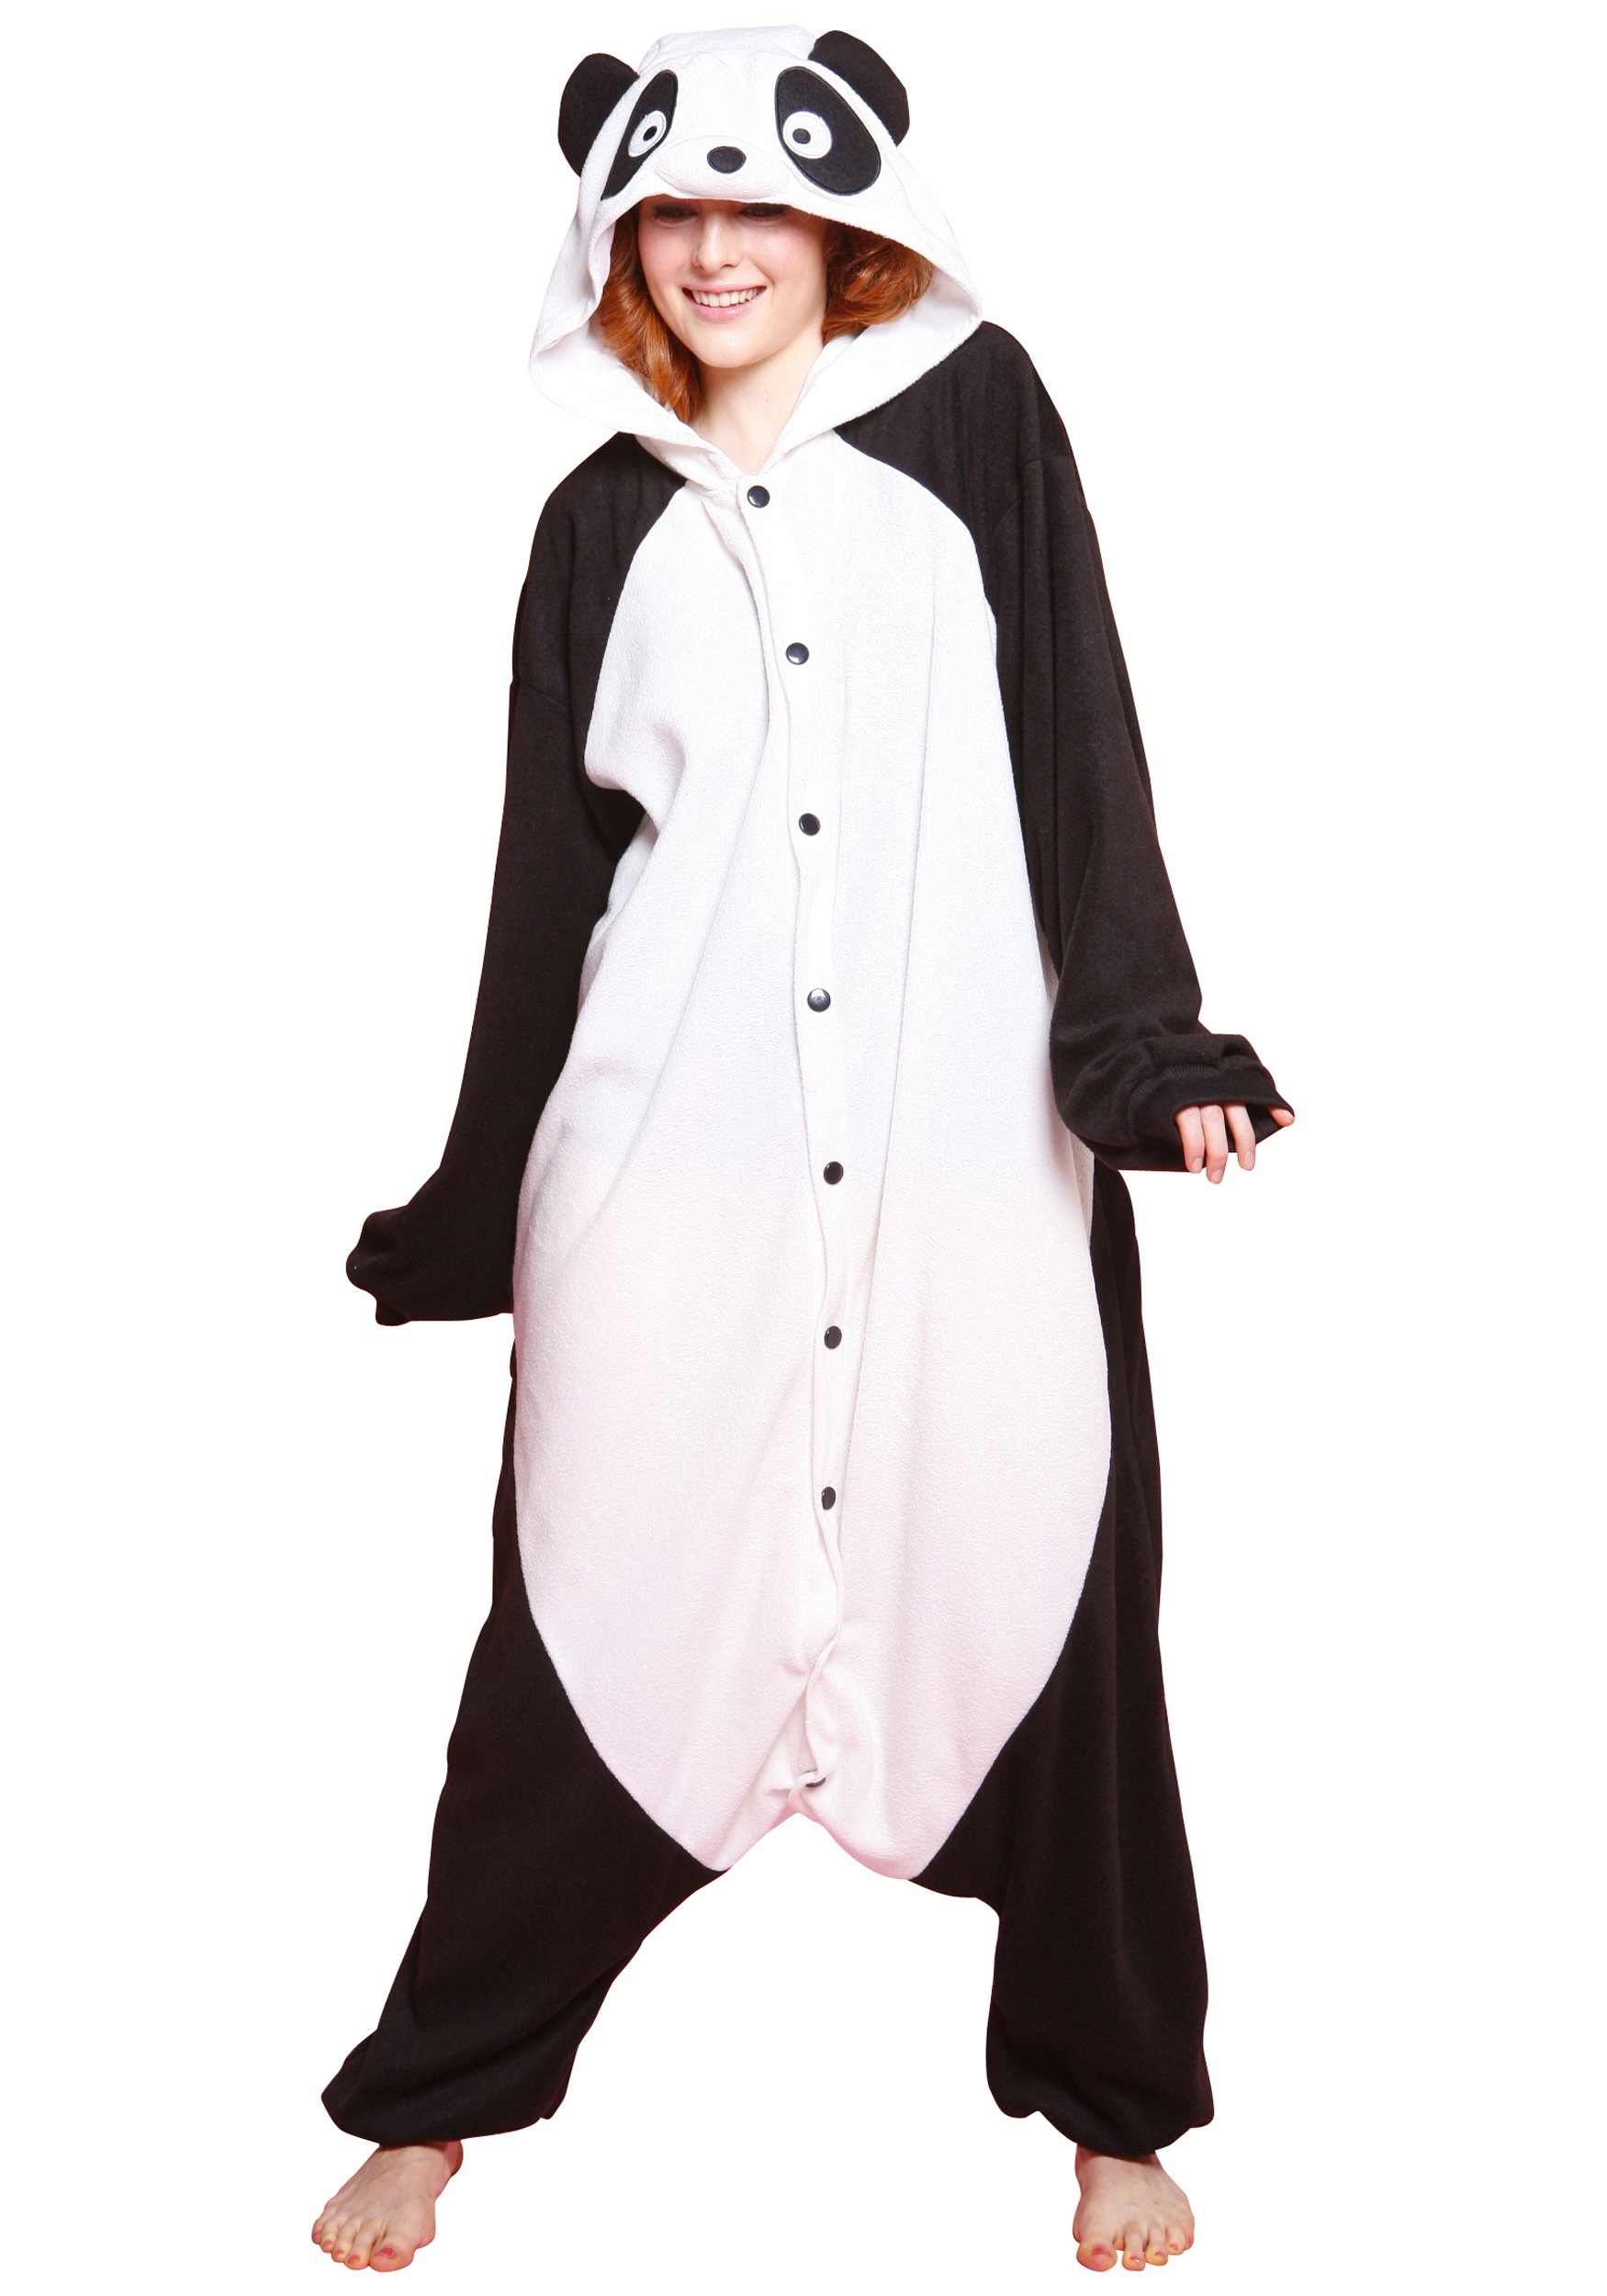 Panda Pajama Costume  sc 1 st  Halloween Costumes : panda halloween costume men  - Germanpascual.Com